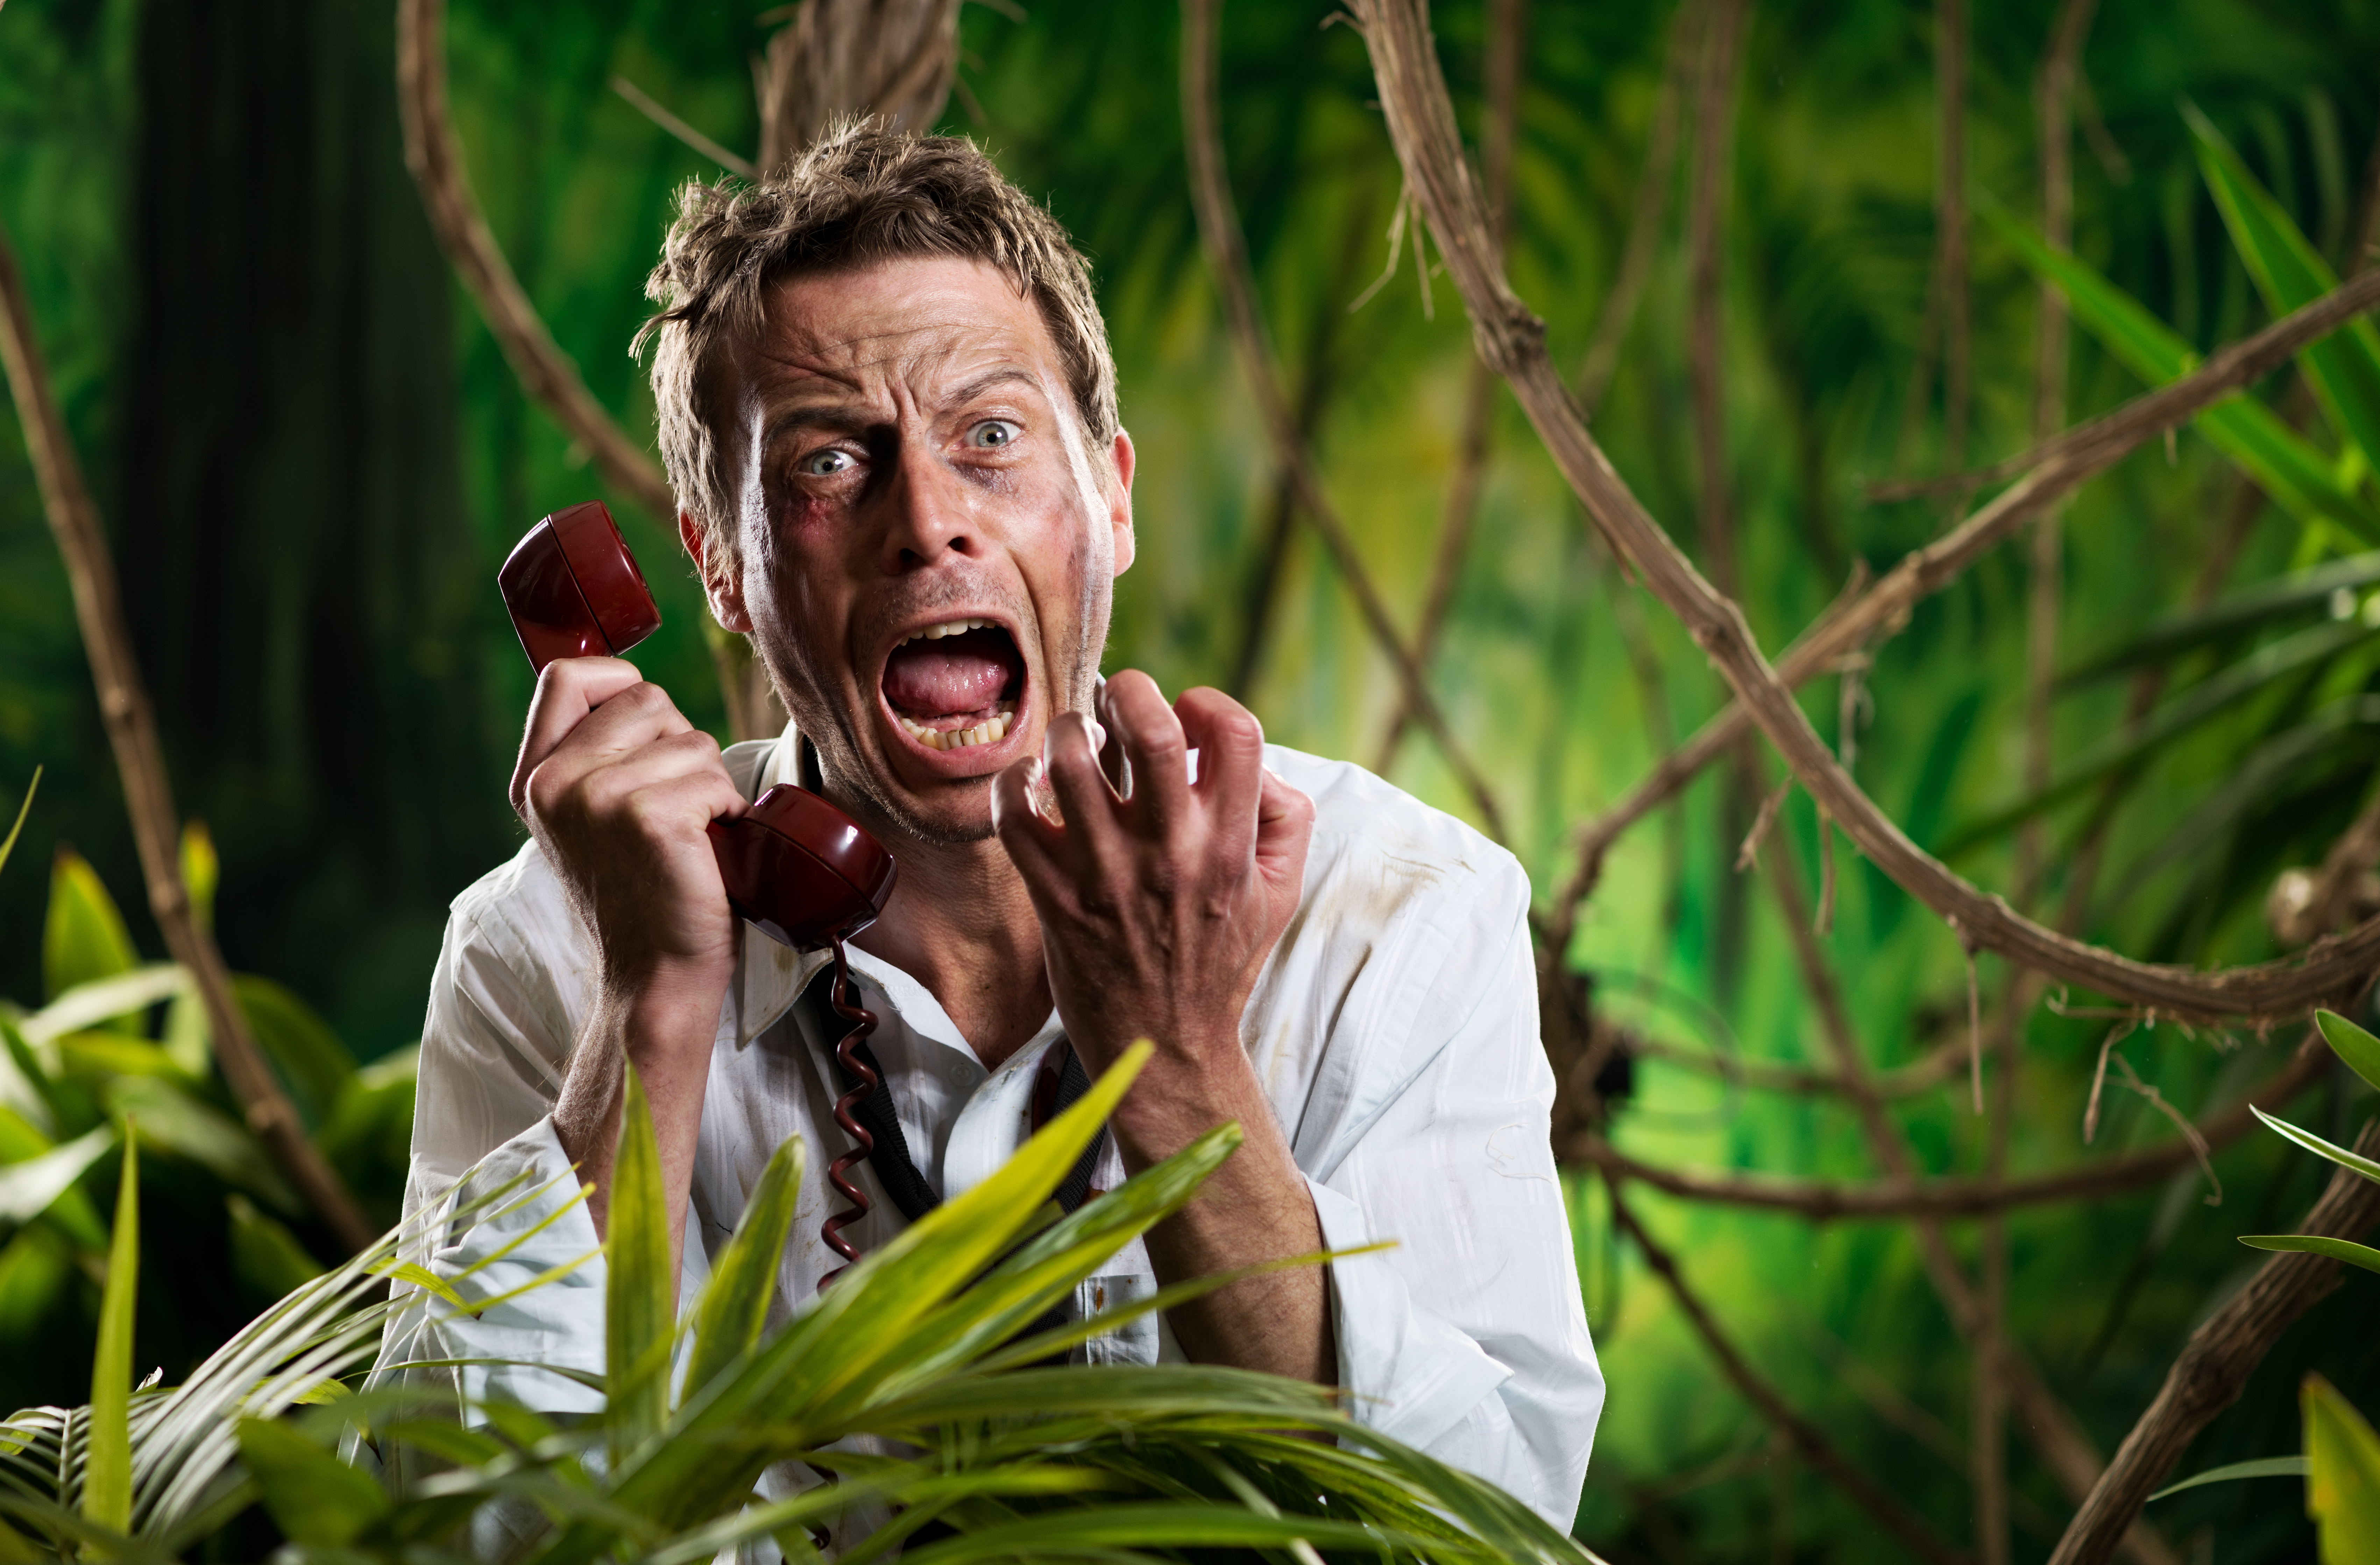 Man lost in PPI jungle.